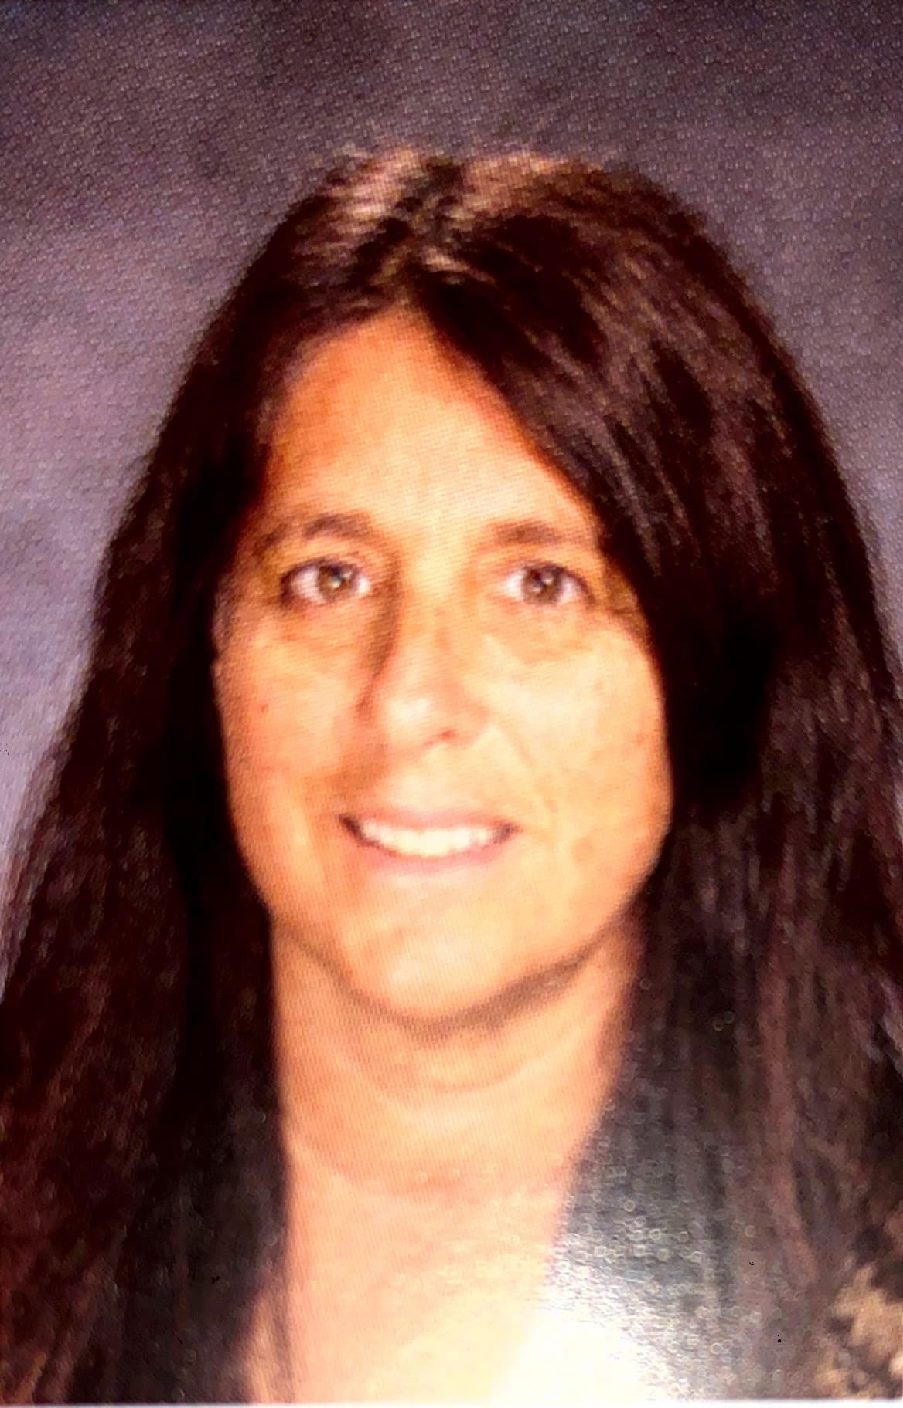 Navigation to Story: The impactful career of Mrs. Canfield